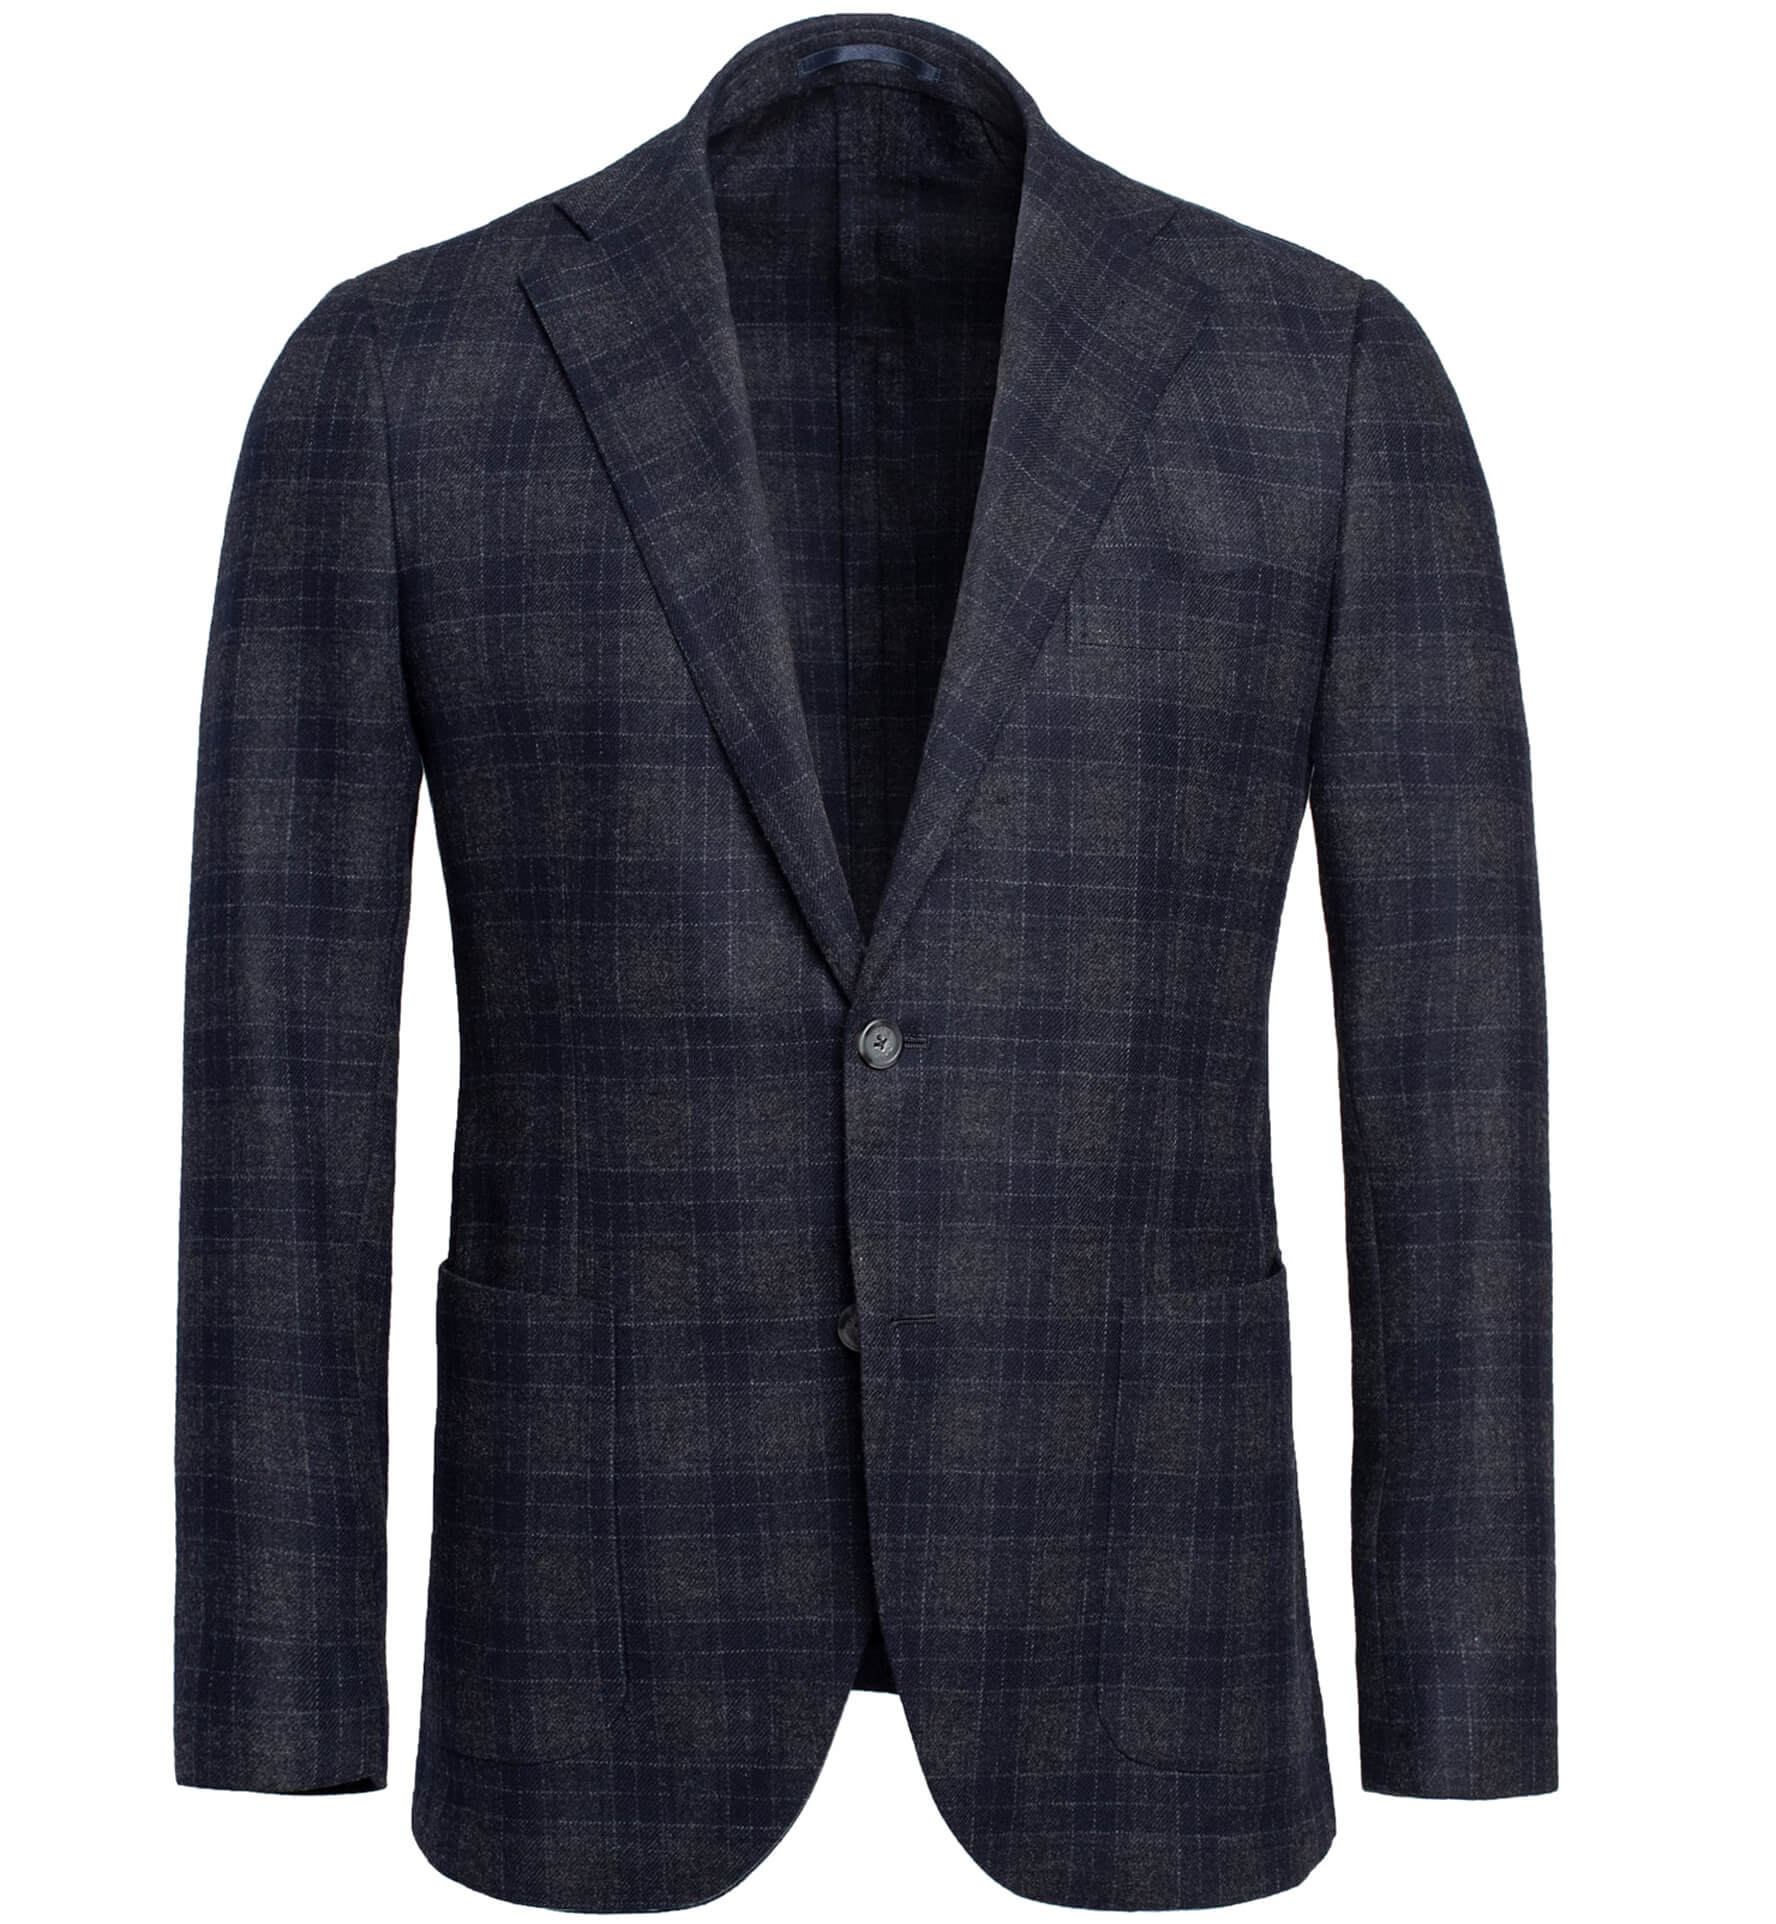 Zoom Image of Bedford Navy and Grey Plaid Wool and Cashmere Jacket